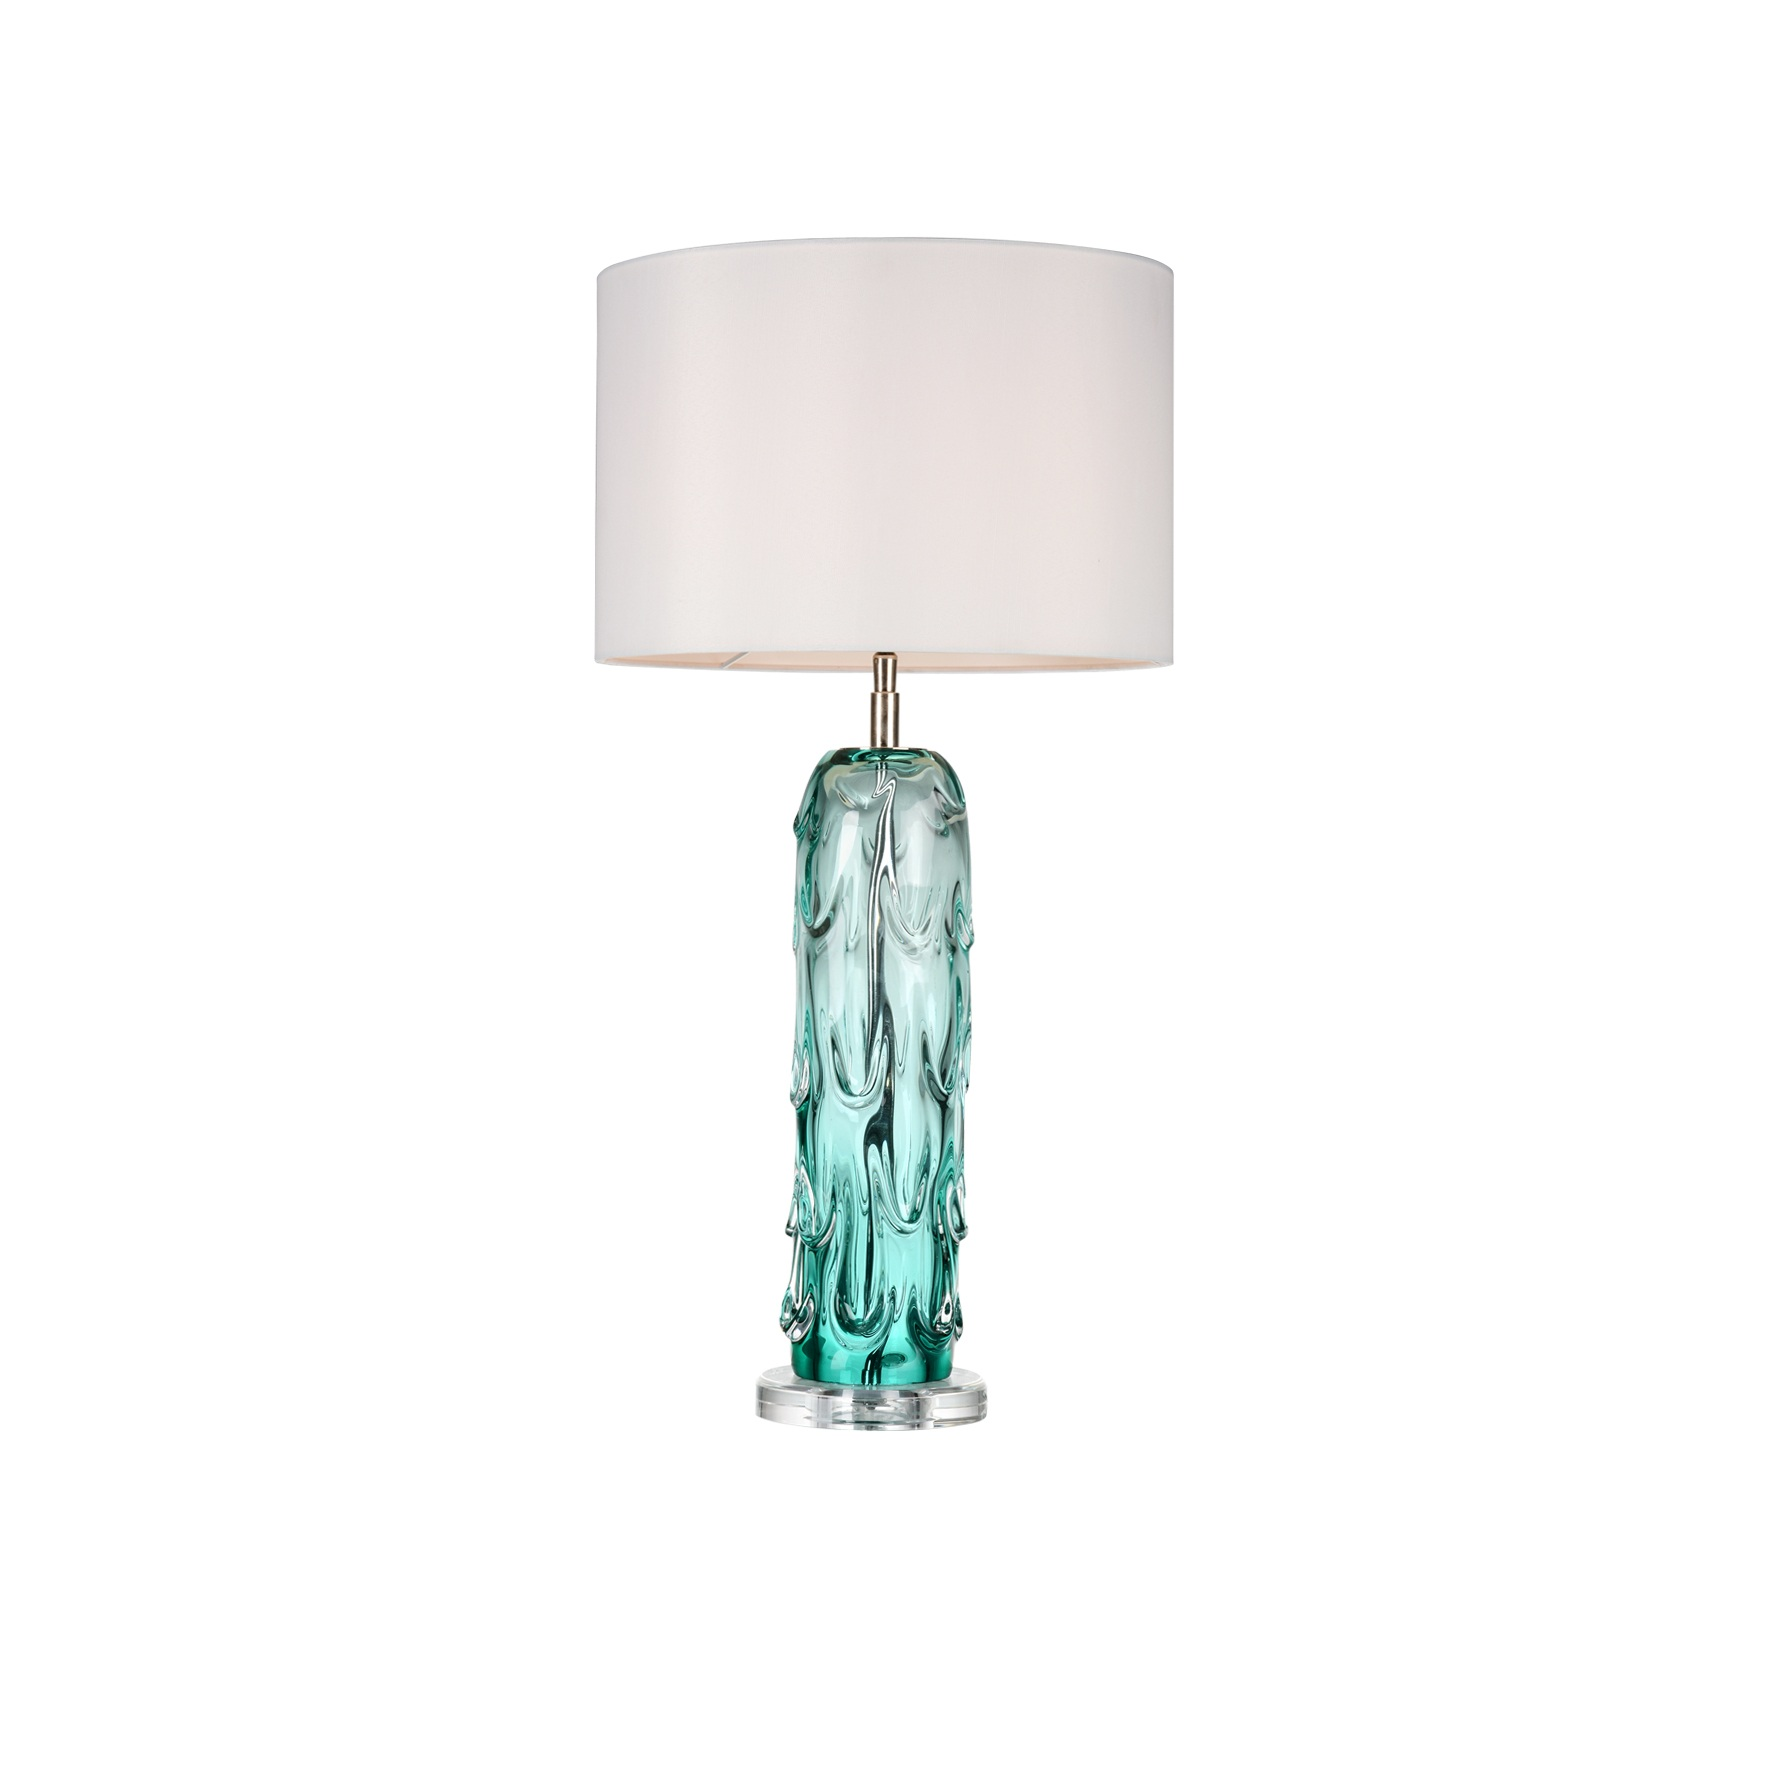 Picture of: Crystal Table Lamp Green Blown Glass Table Lamps For Hotel Living Room With Fabric Shade Buy Crystal Side Table Lamps Hotel Glass Table Lamp Brown Glass Table Lamp Product On Alibaba Com